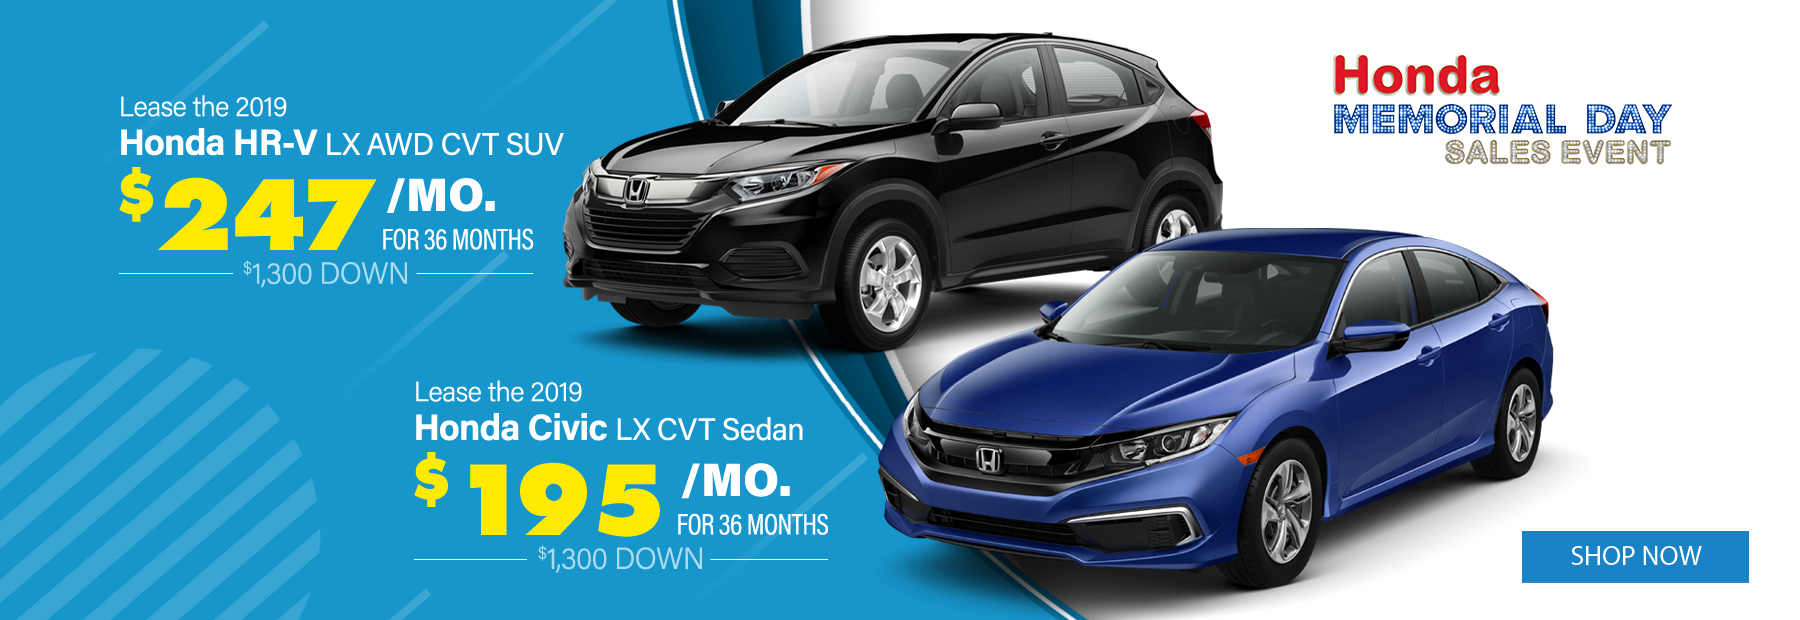 new-honda-hrv-civic-lease-deals-cincinnati-ohio-kings-automall